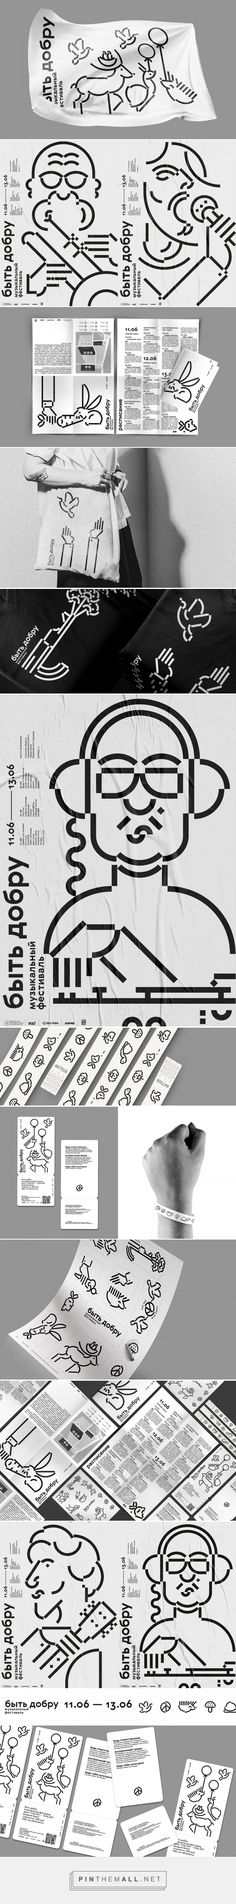 Byt' Dobru festival on Behance... - a grouped images picture - Pin Them All